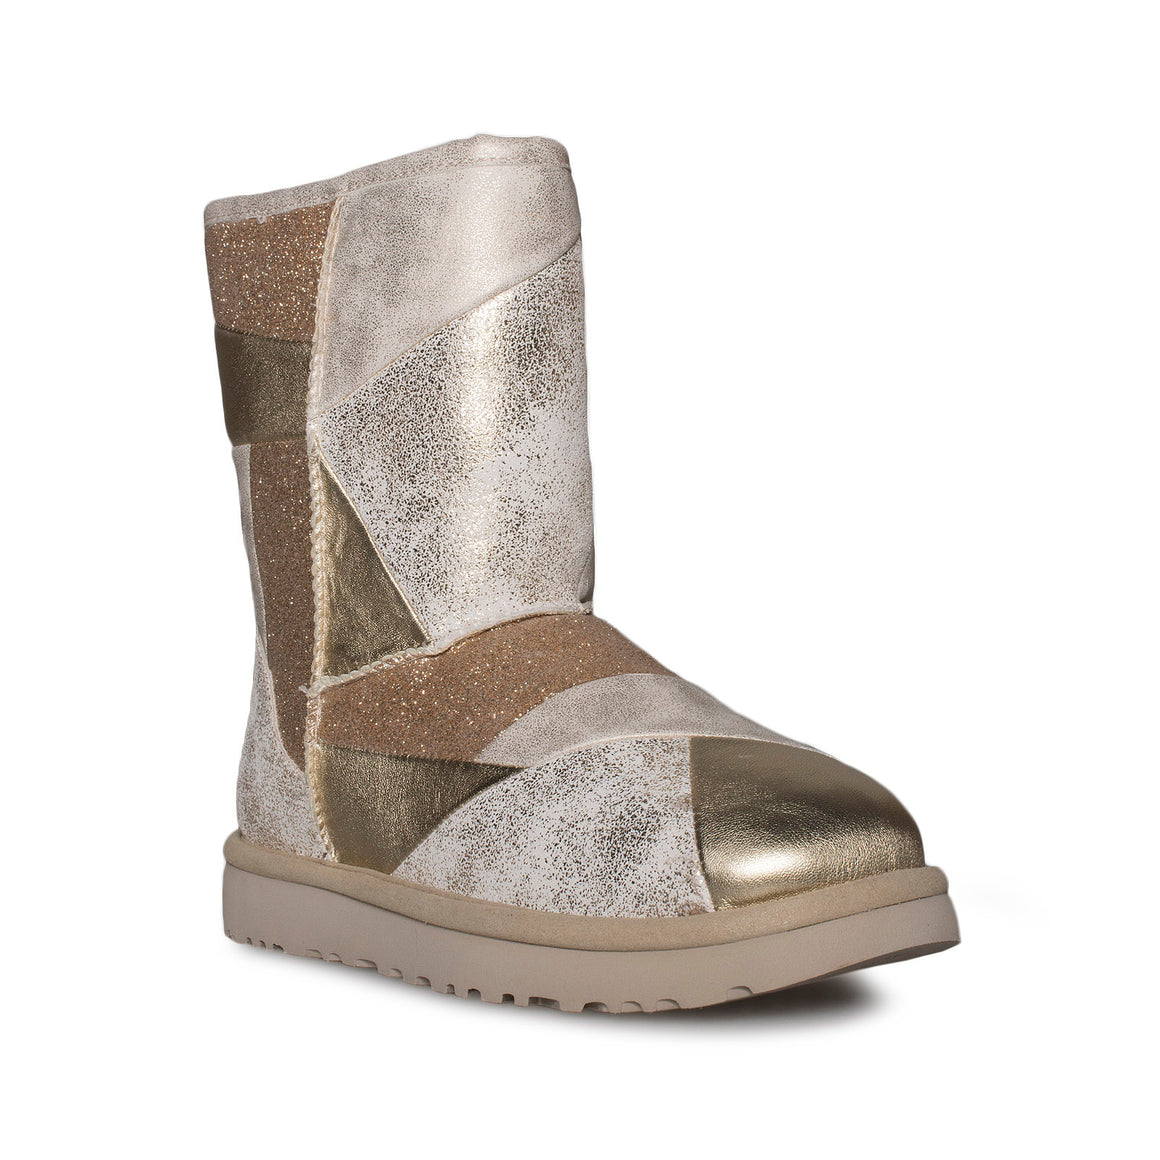 UGG Classic Glitter Patchwork Gold Boots - Women's